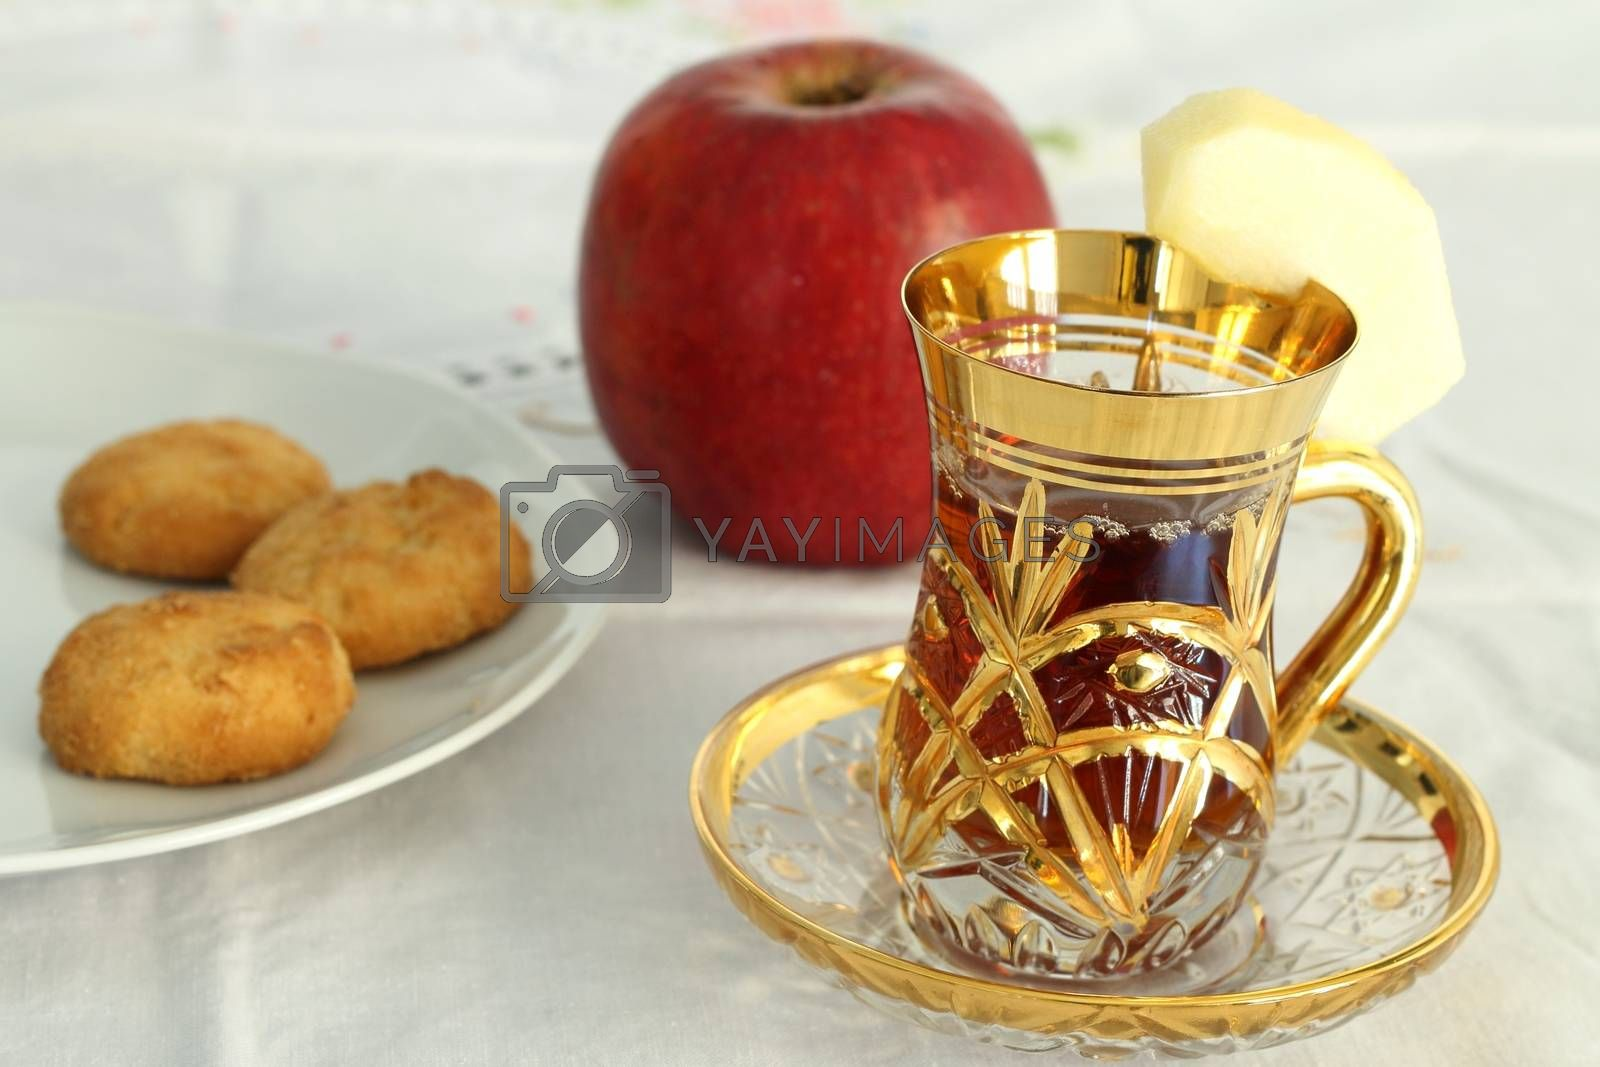 Cup of apple tea with biscuits